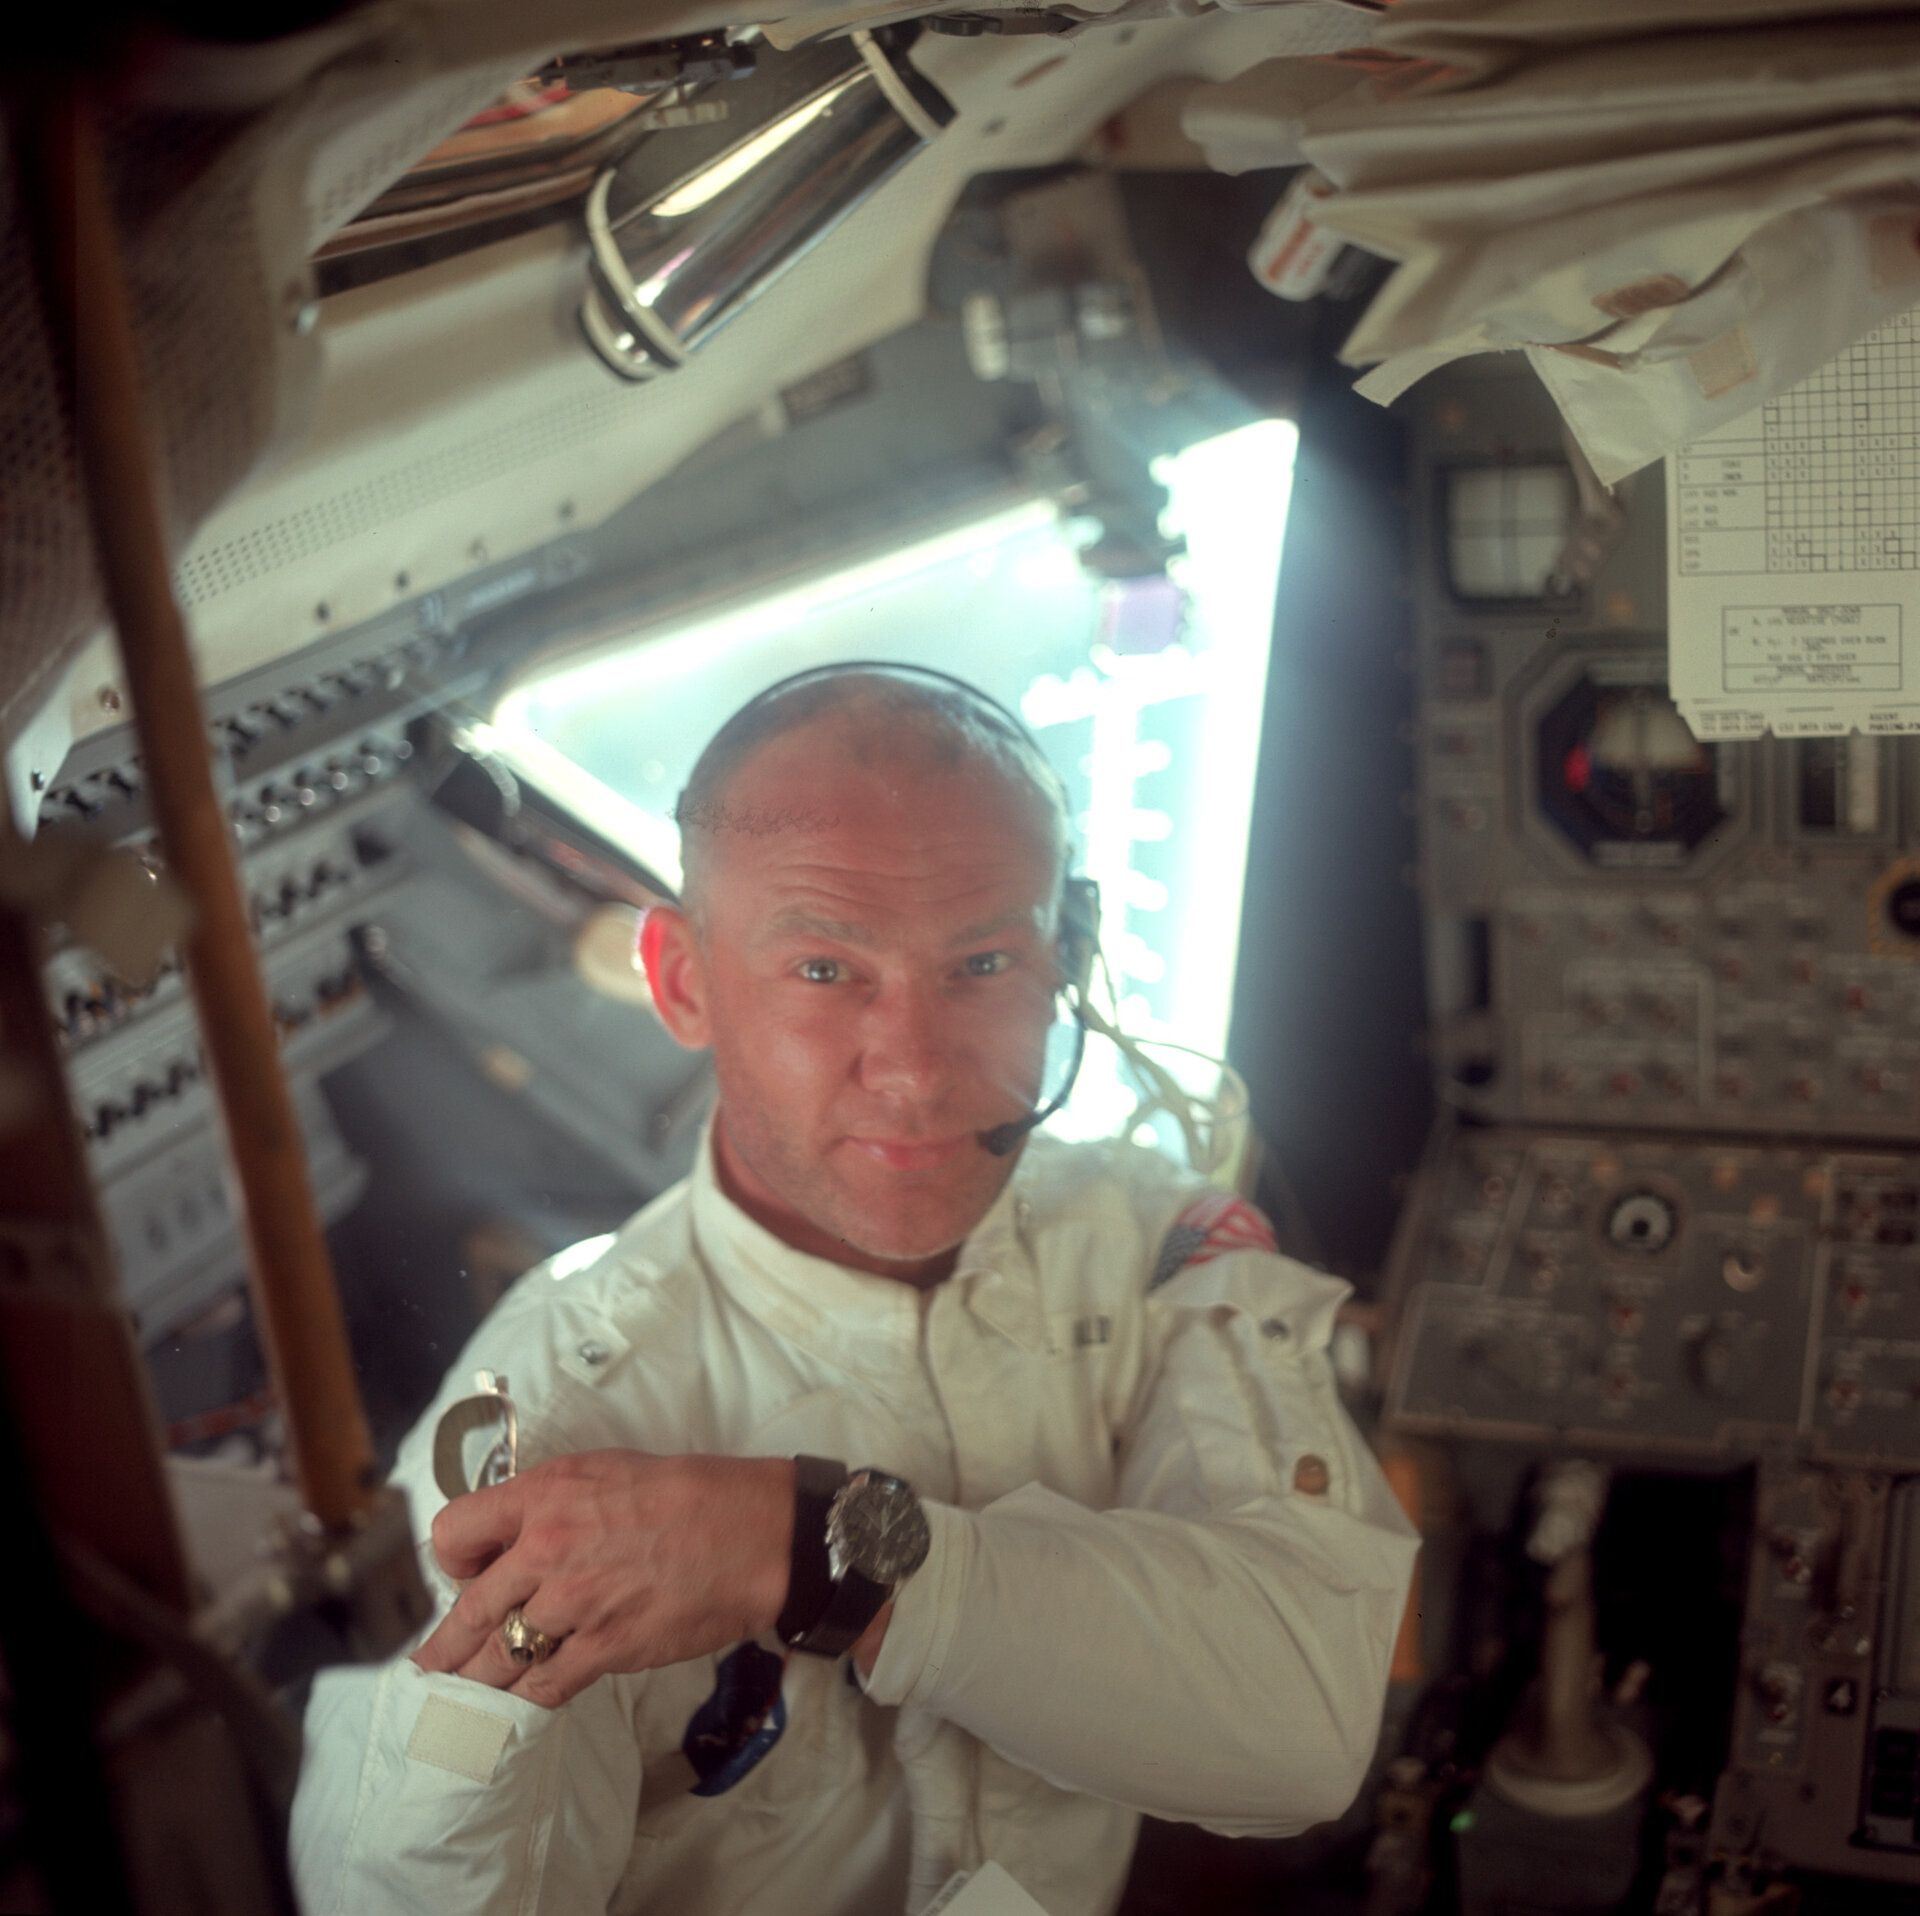 Aldrin working in the Lunar Module